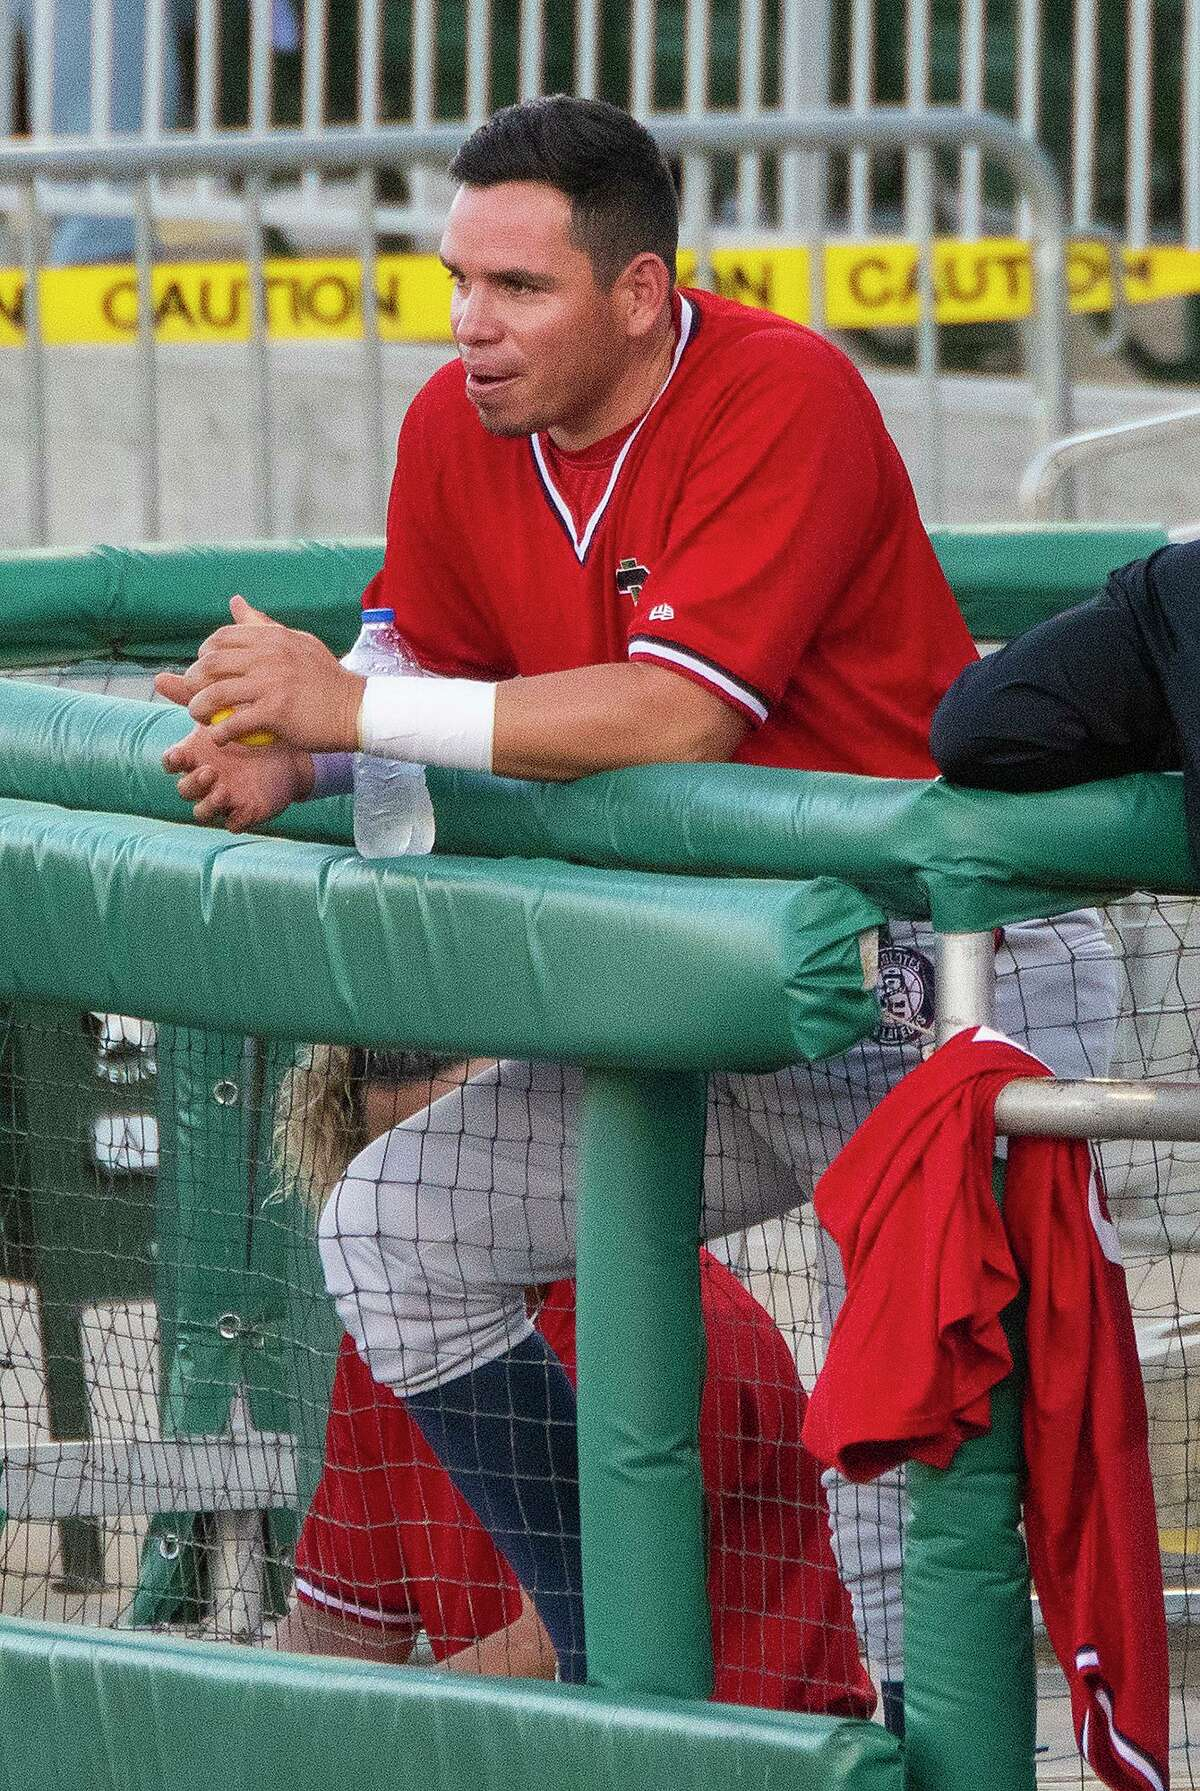 Outfielder Beder Gutierrez is confident he can make the Tecolotes' roster this season.